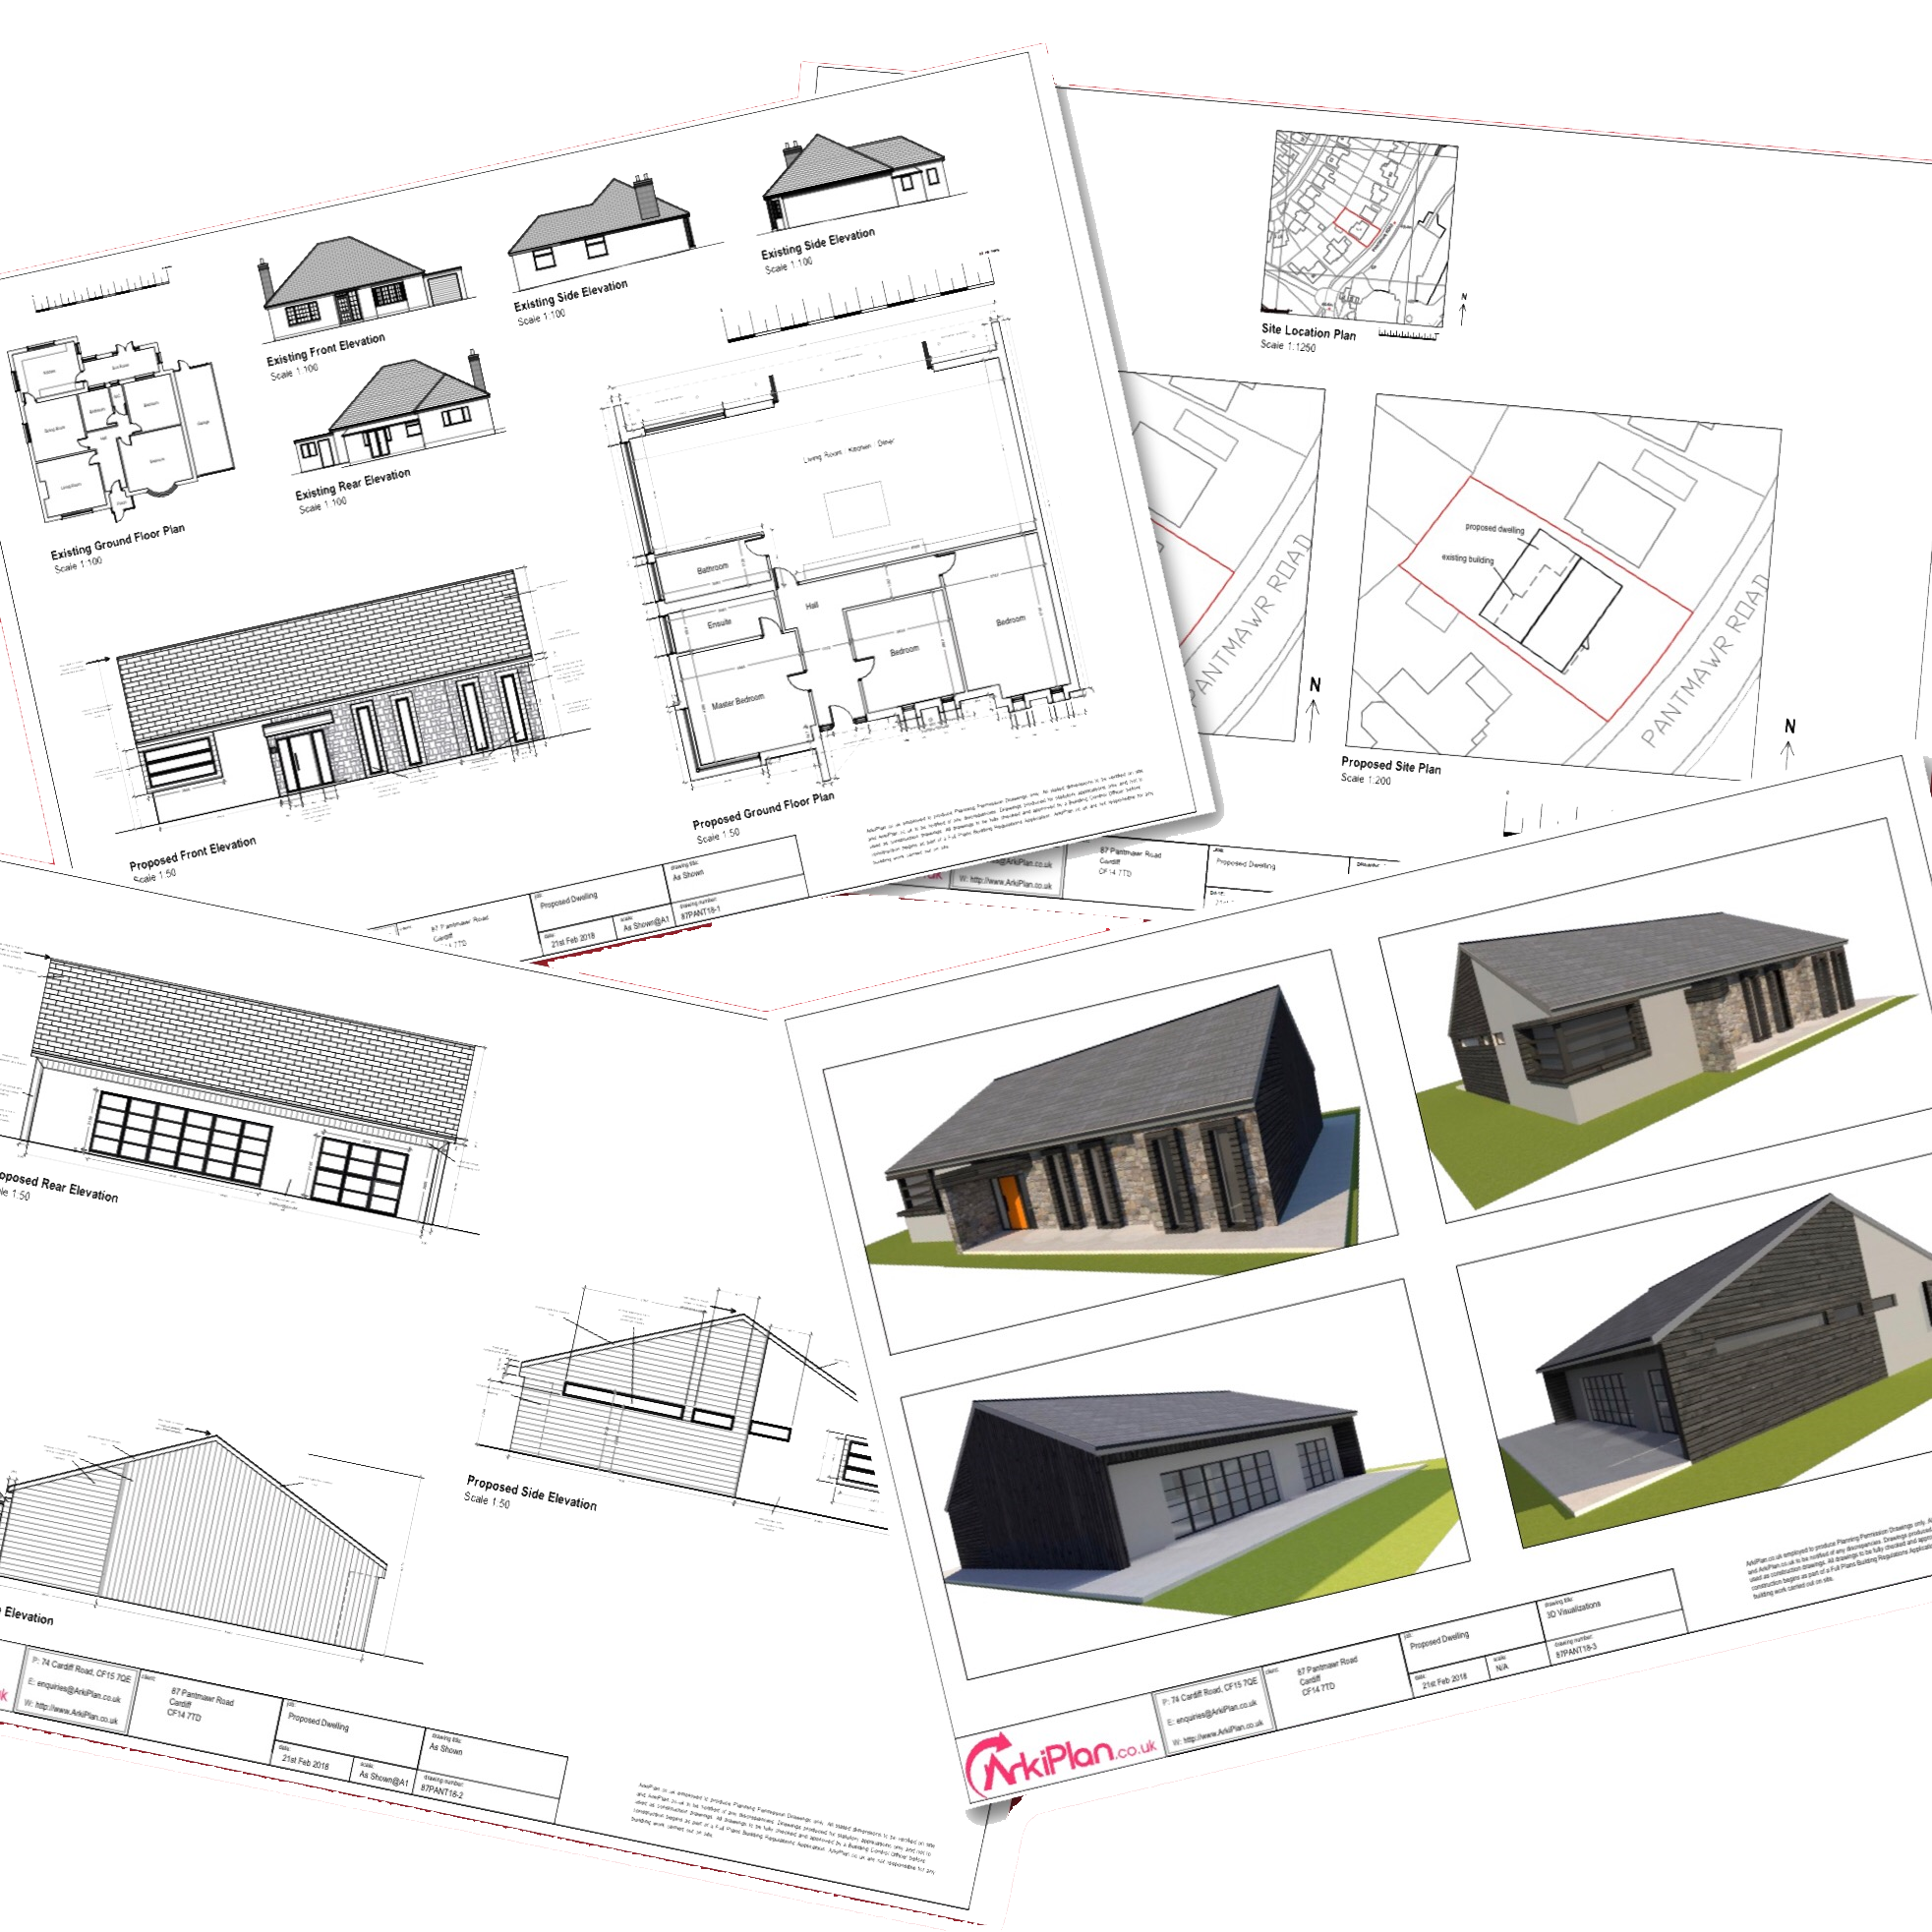 New House Drawings.png